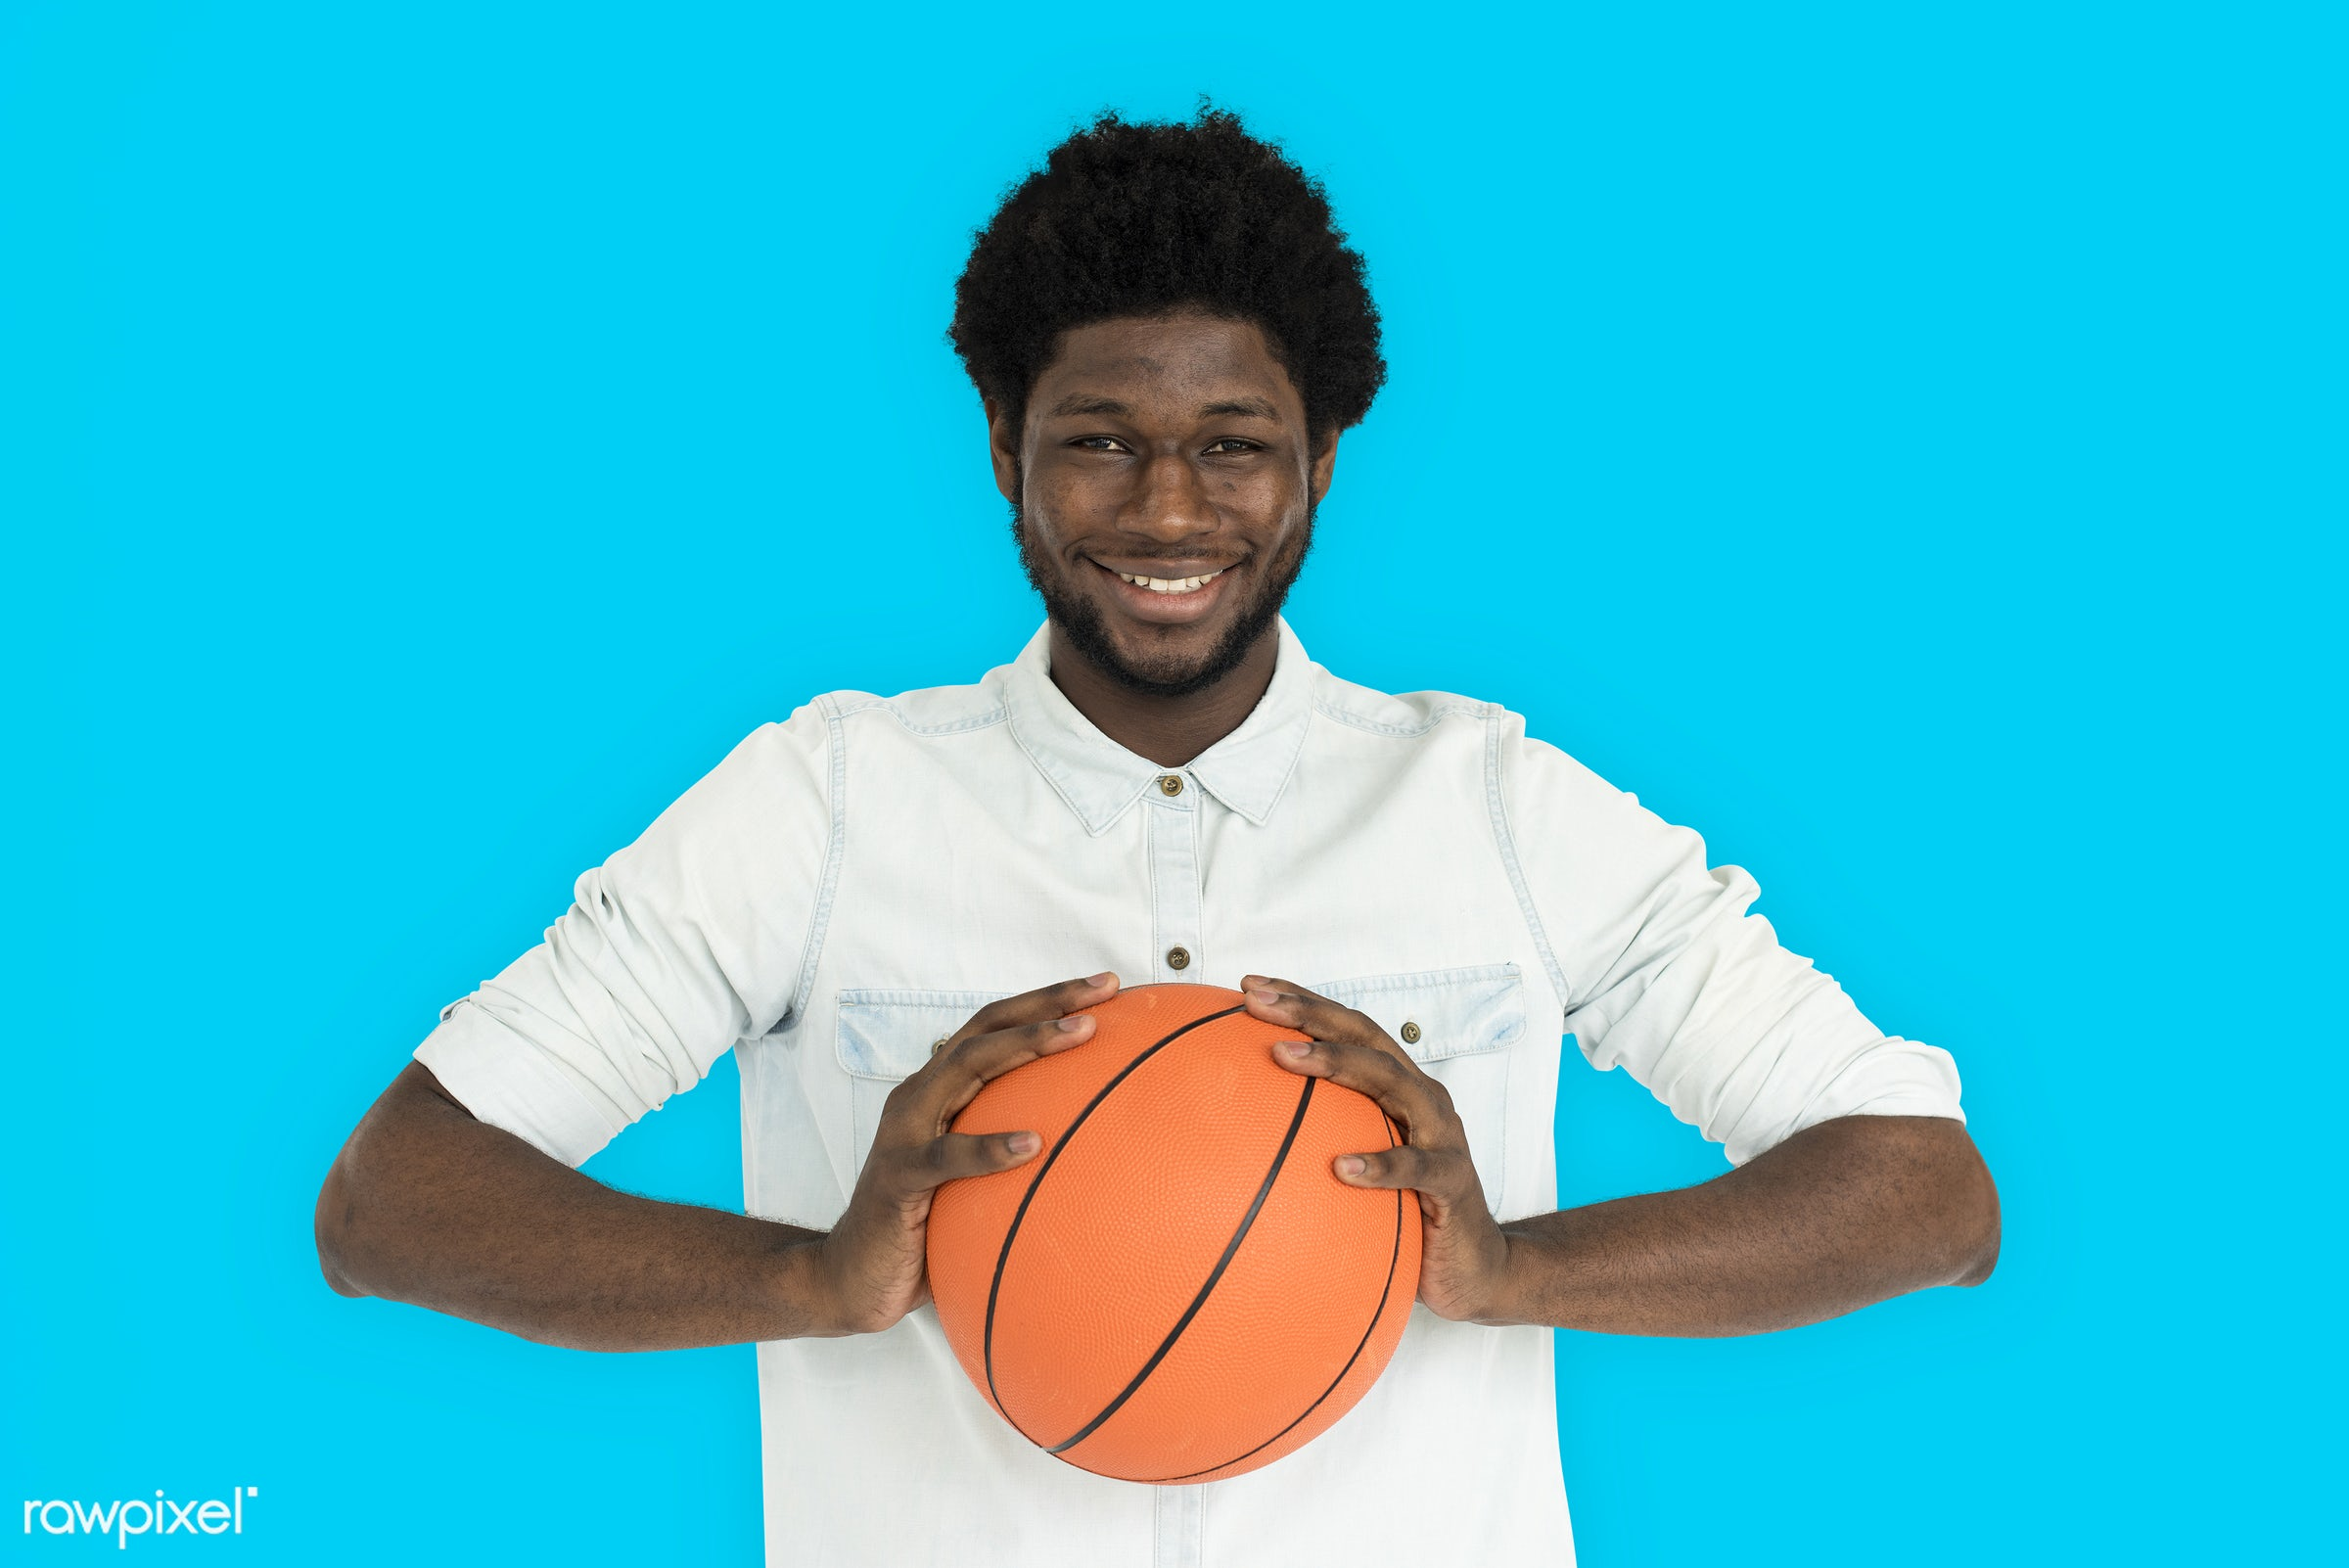 studio, basketball, expression, person, holding, vibrant, people, lifestyle, cheerful, smiling, isolated, laugh, hobby,...